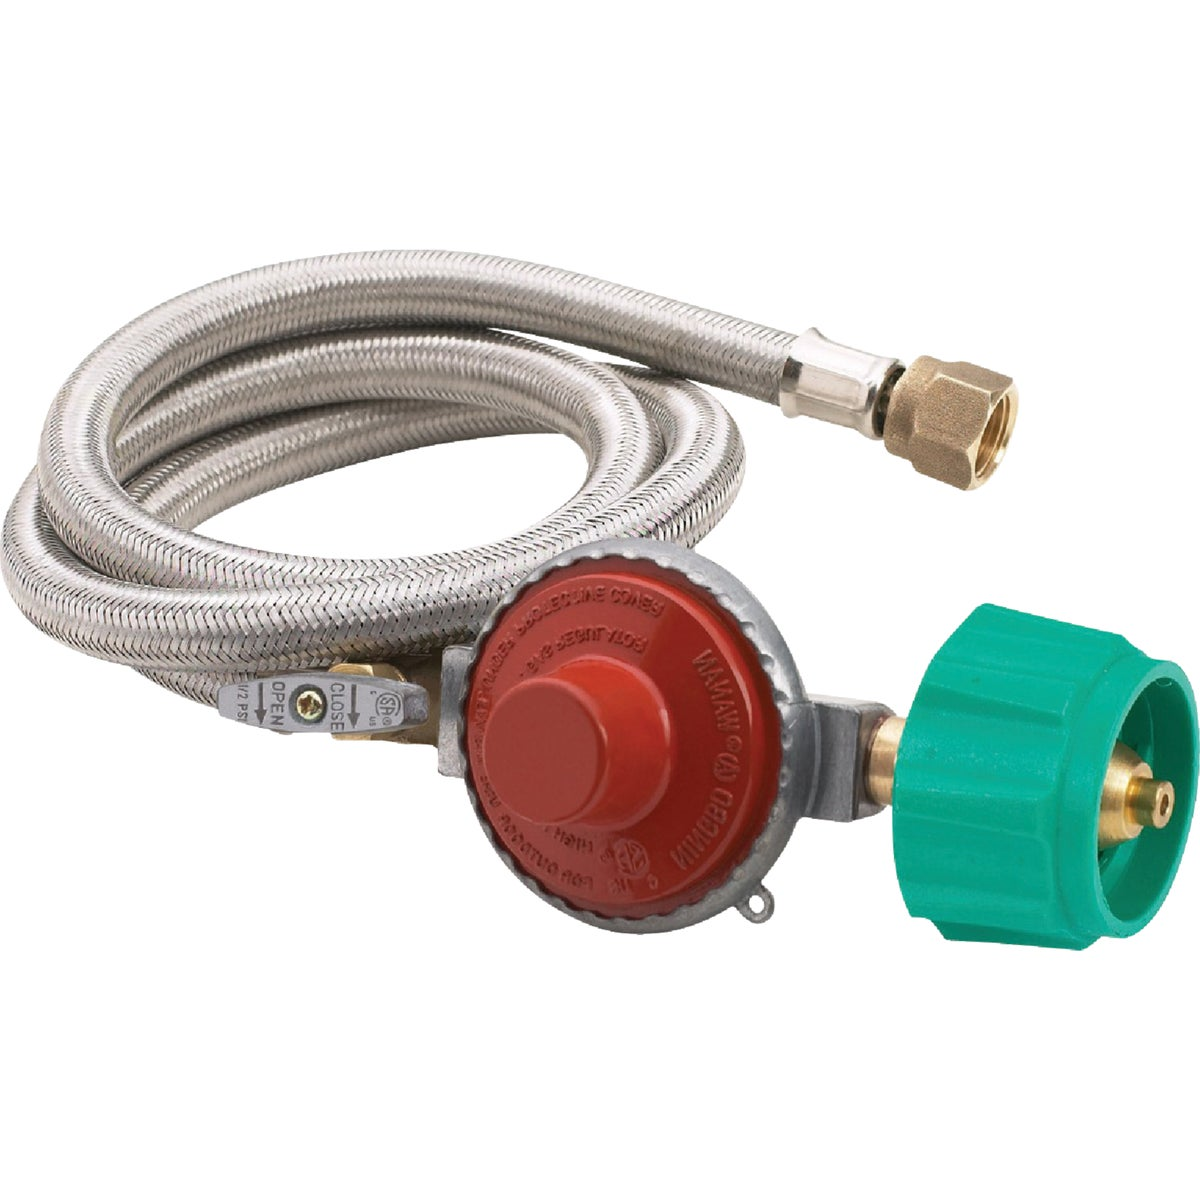 "48"" 20PSI SS HOSE W/REG - M5HPR-1 by Barbour Intl"